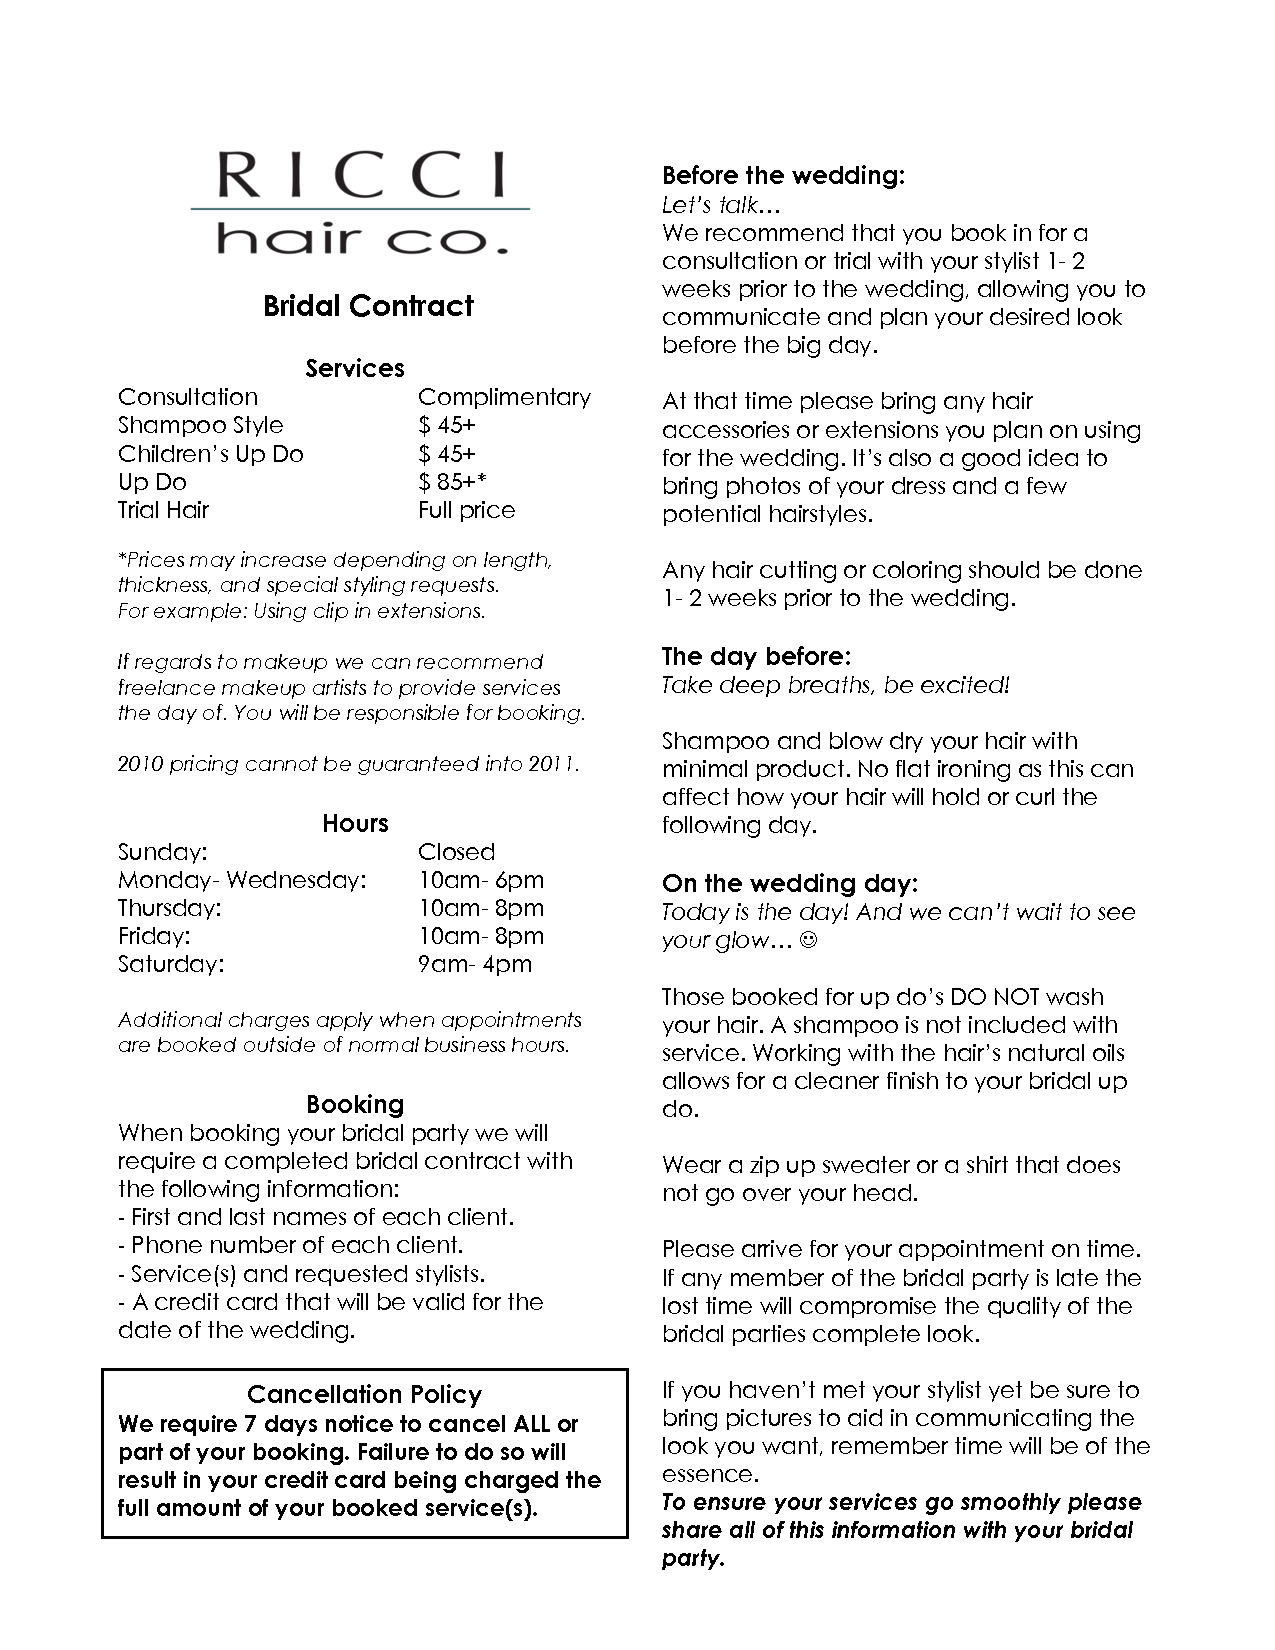 bridalhaircotract Bridal Hair Stylist Contract Hair